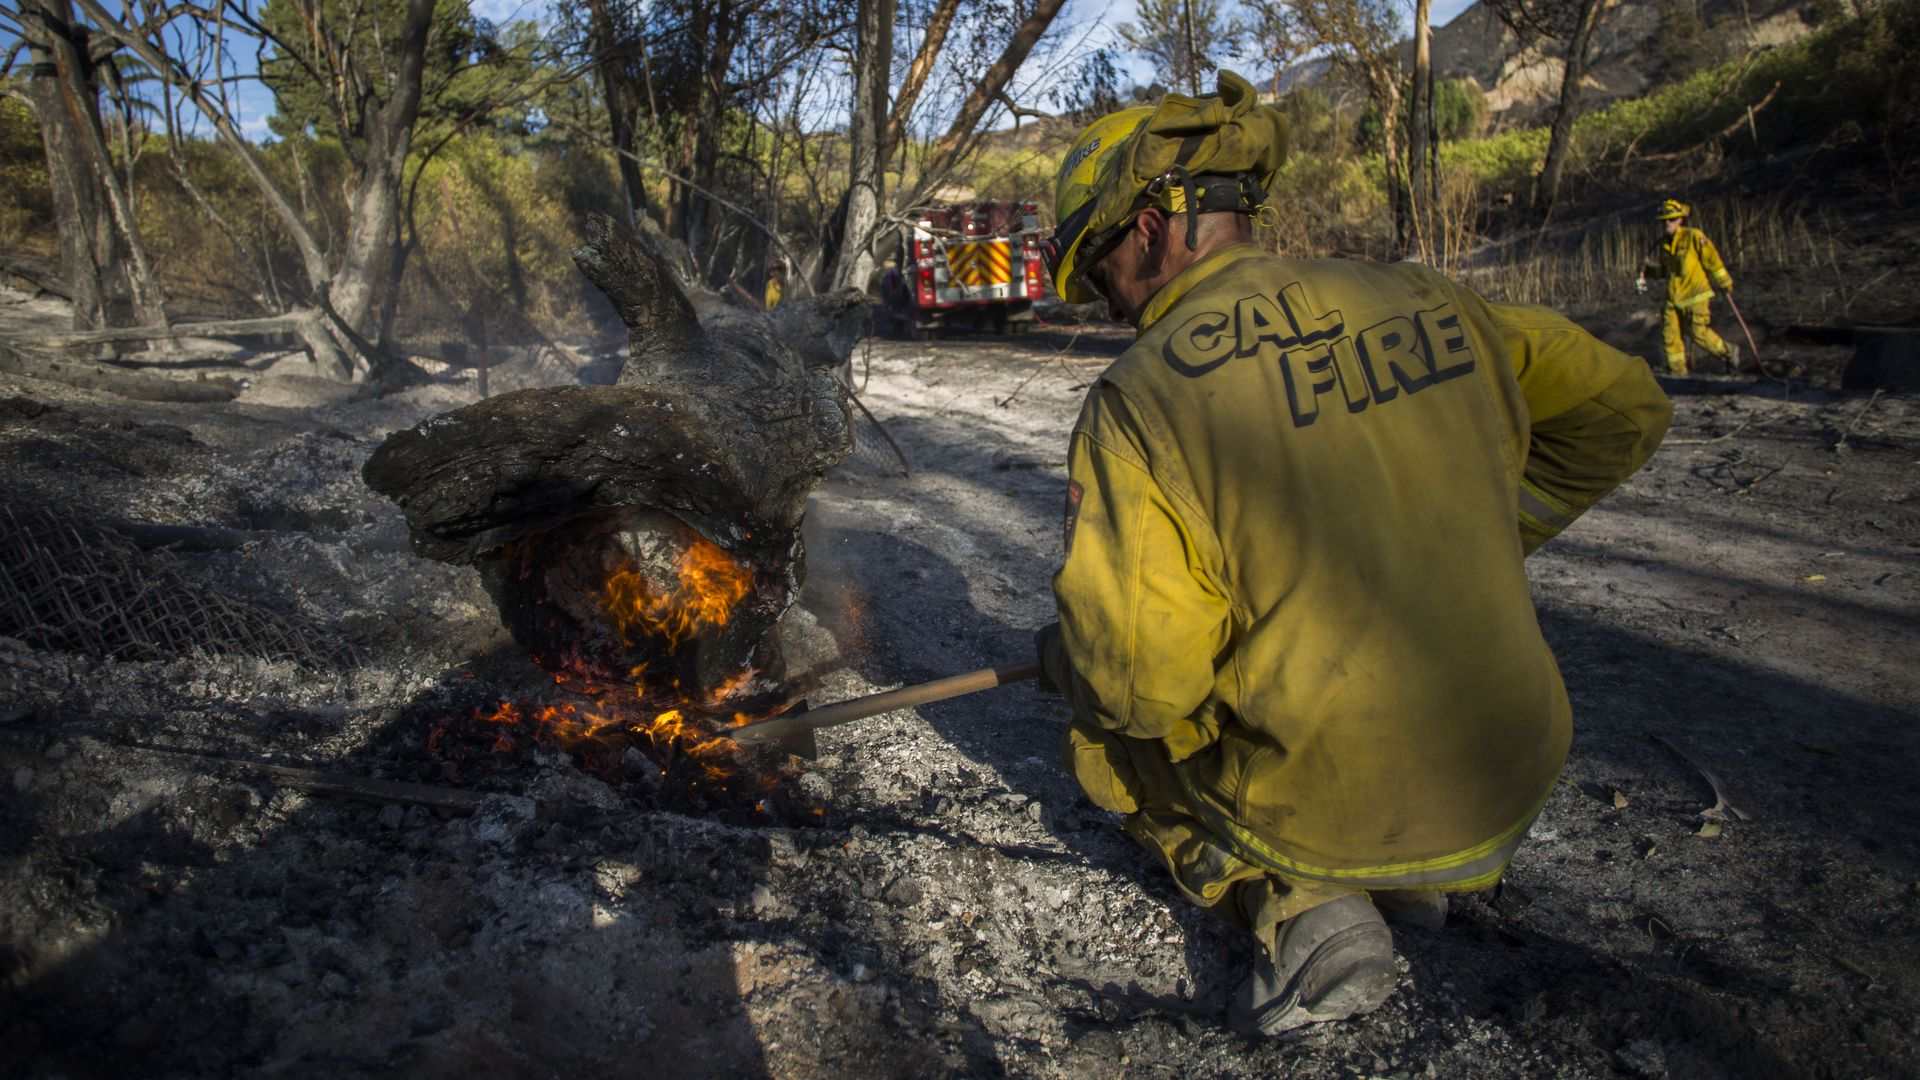 A firefighter controls a hotspot of the Maria Fire, in Santa Paula, Ventura County, California